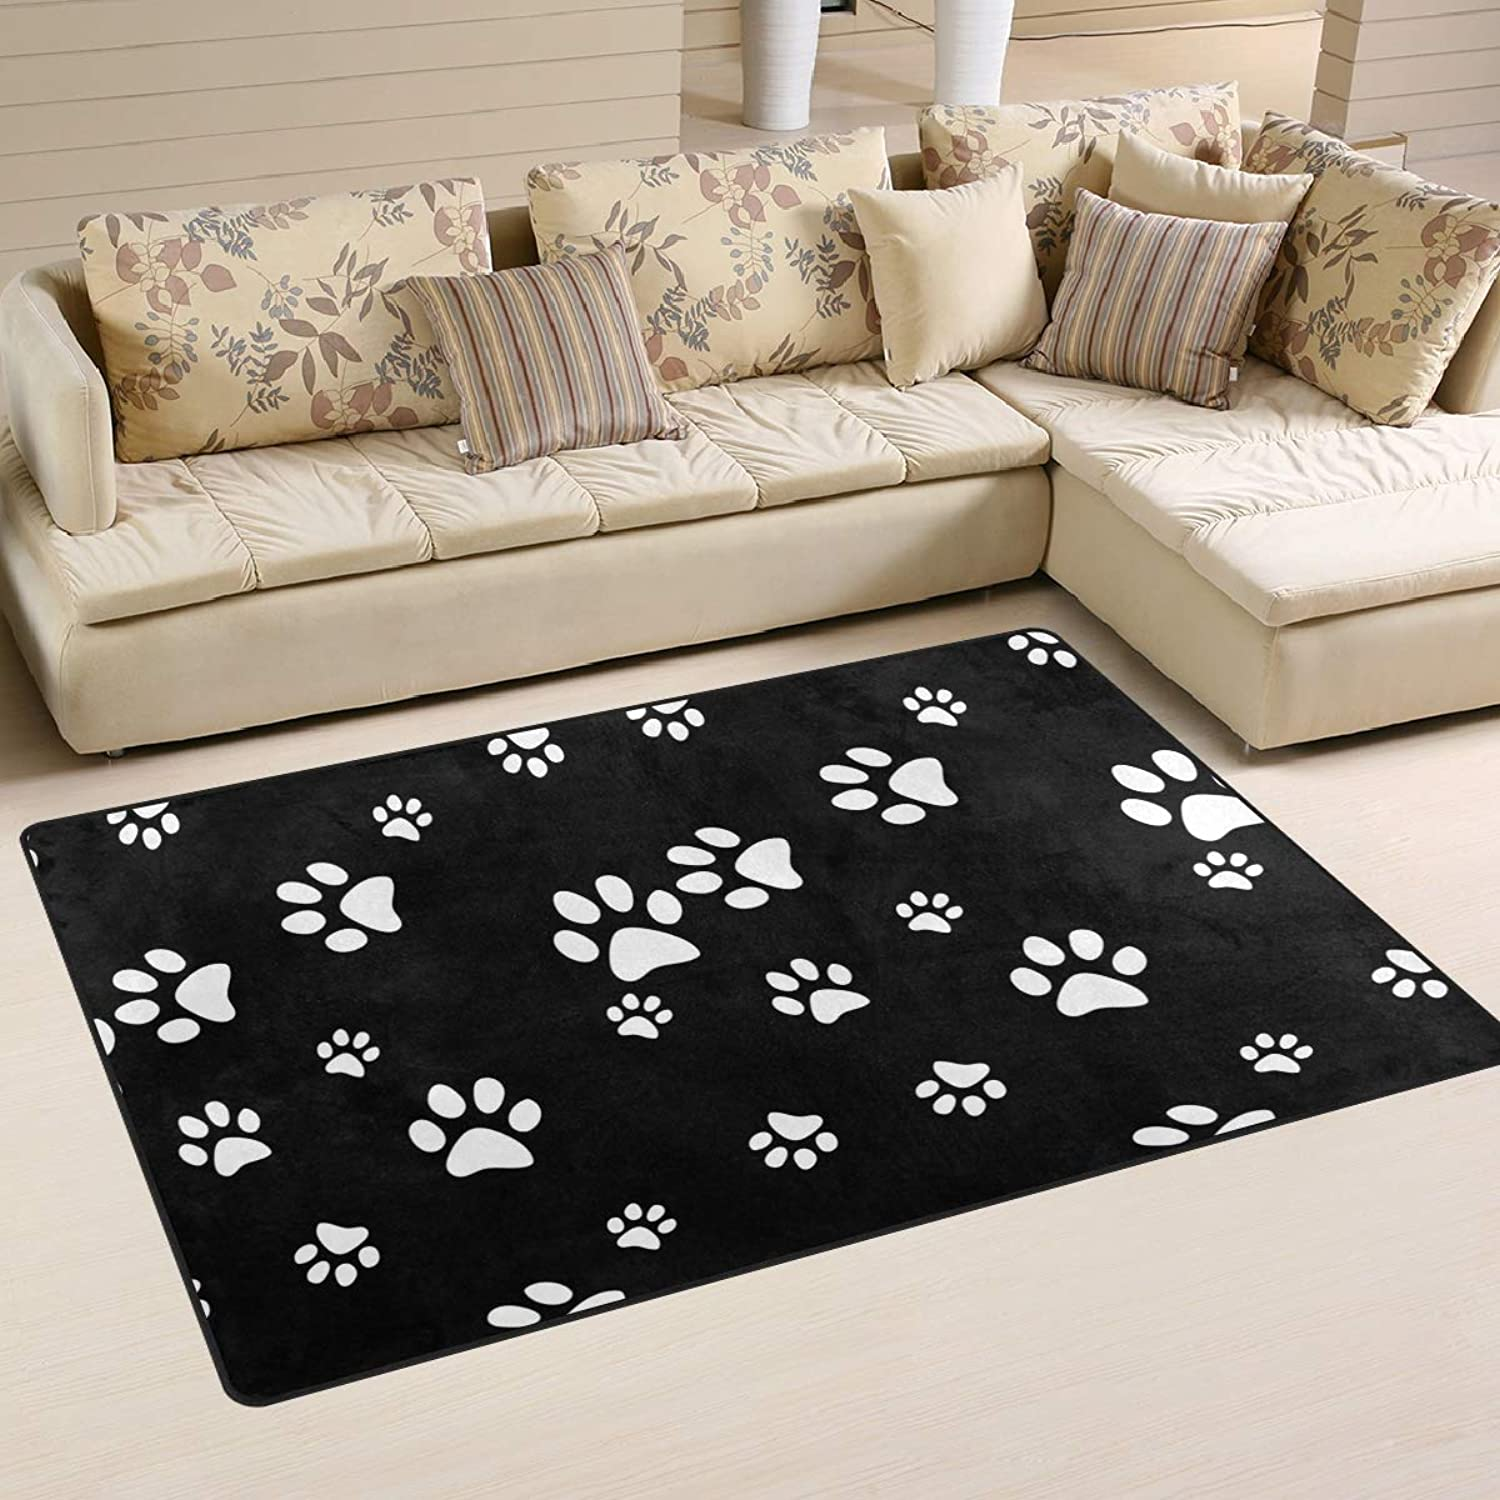 Area Rugs Doormats Cut Animal Dog Puddy Paw Paint 5'x3'3 (60x39 Inches) Non-Slip Floor Mat Soft Carpet for Living Dining Bedroom Home